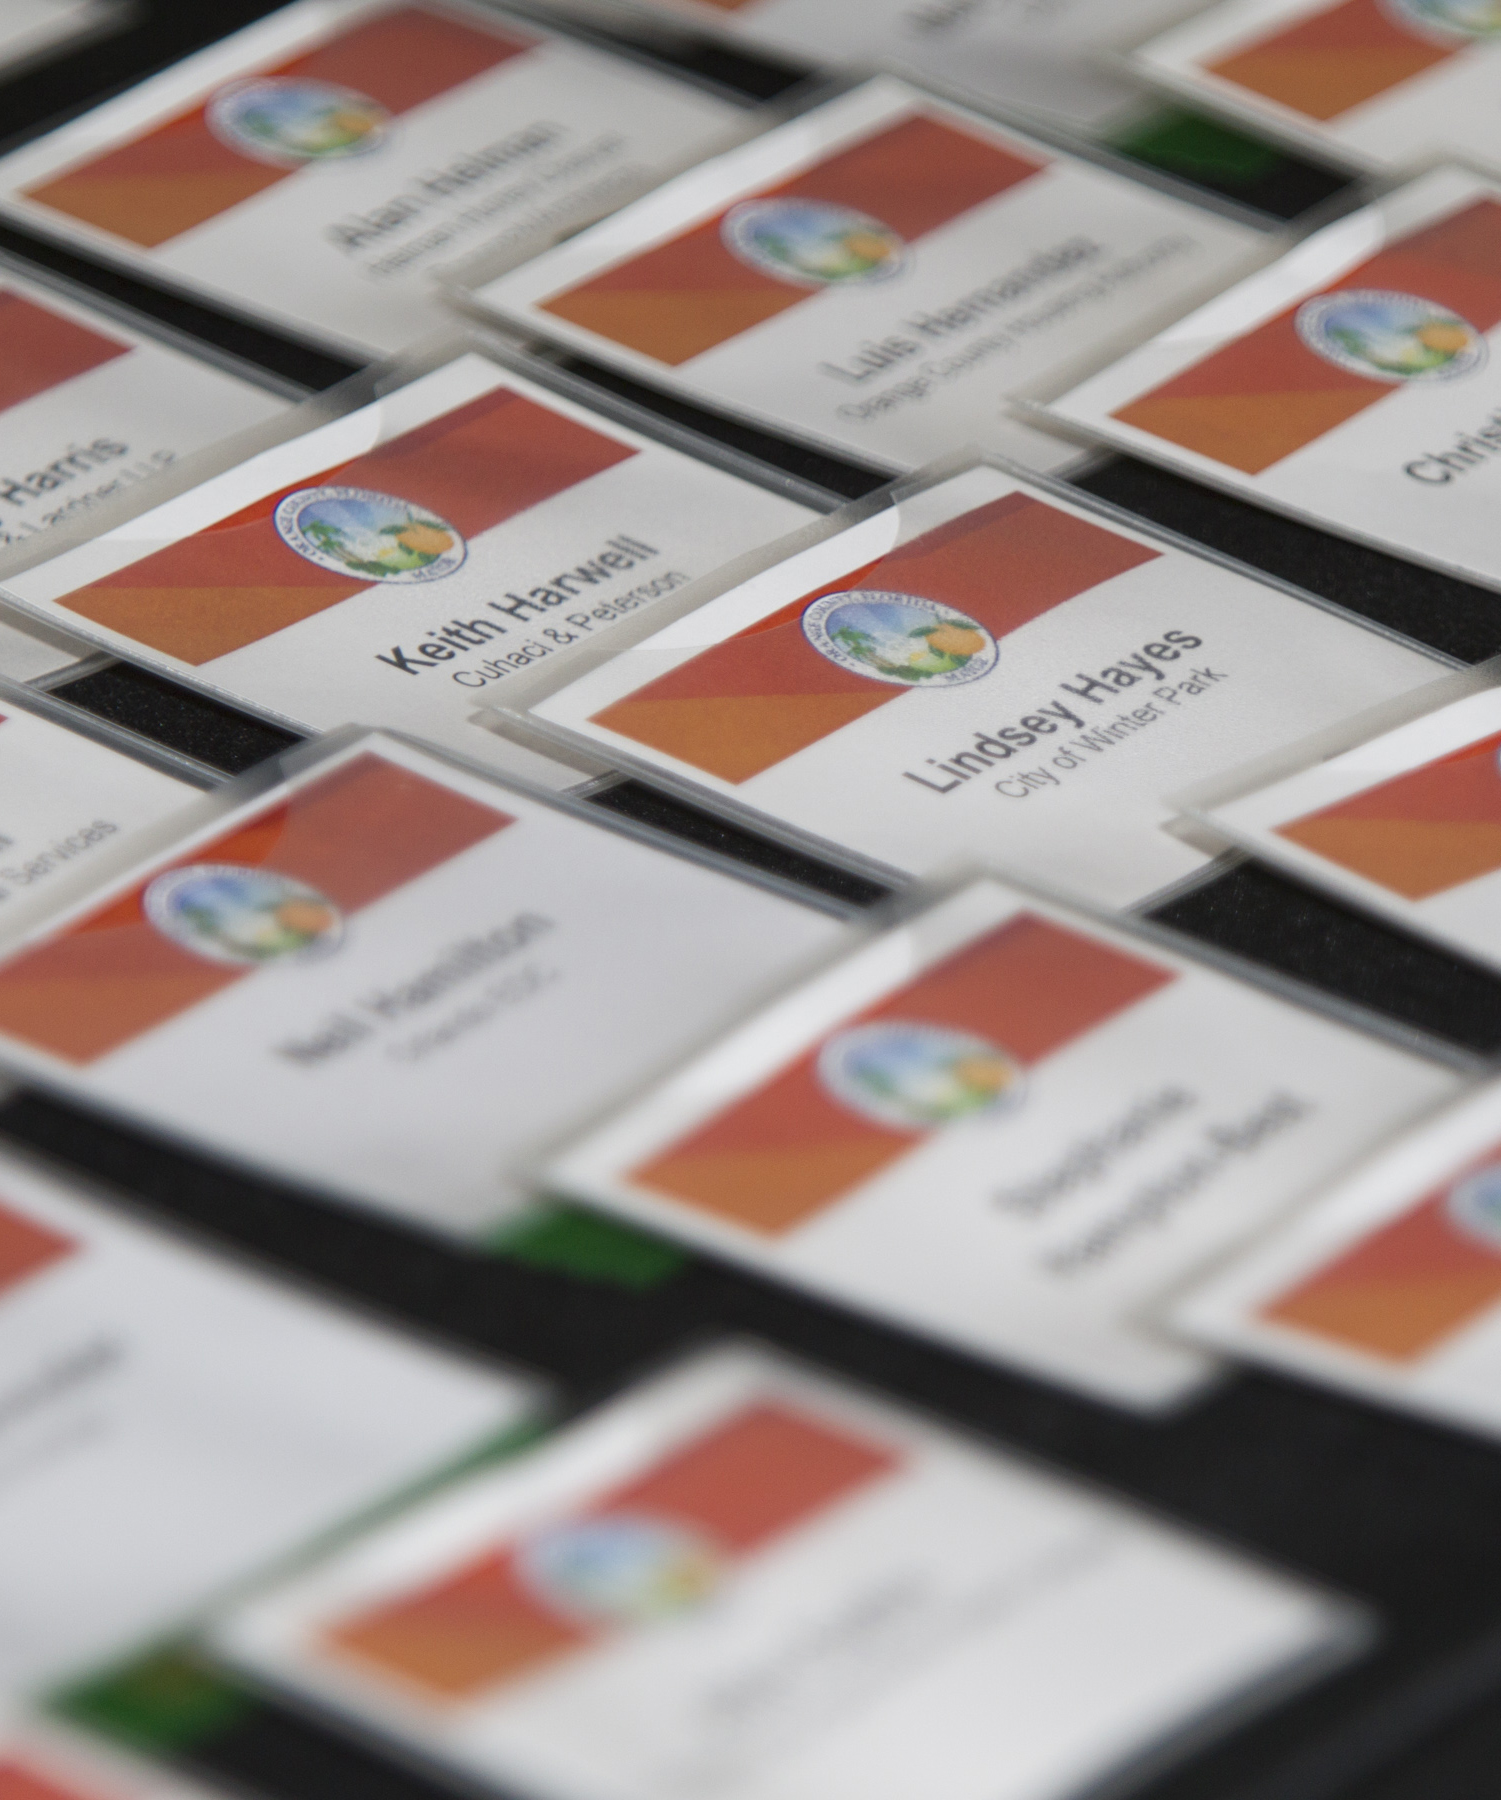 Image of Name Badges at Economic Summit, Links to Economic Summit Page